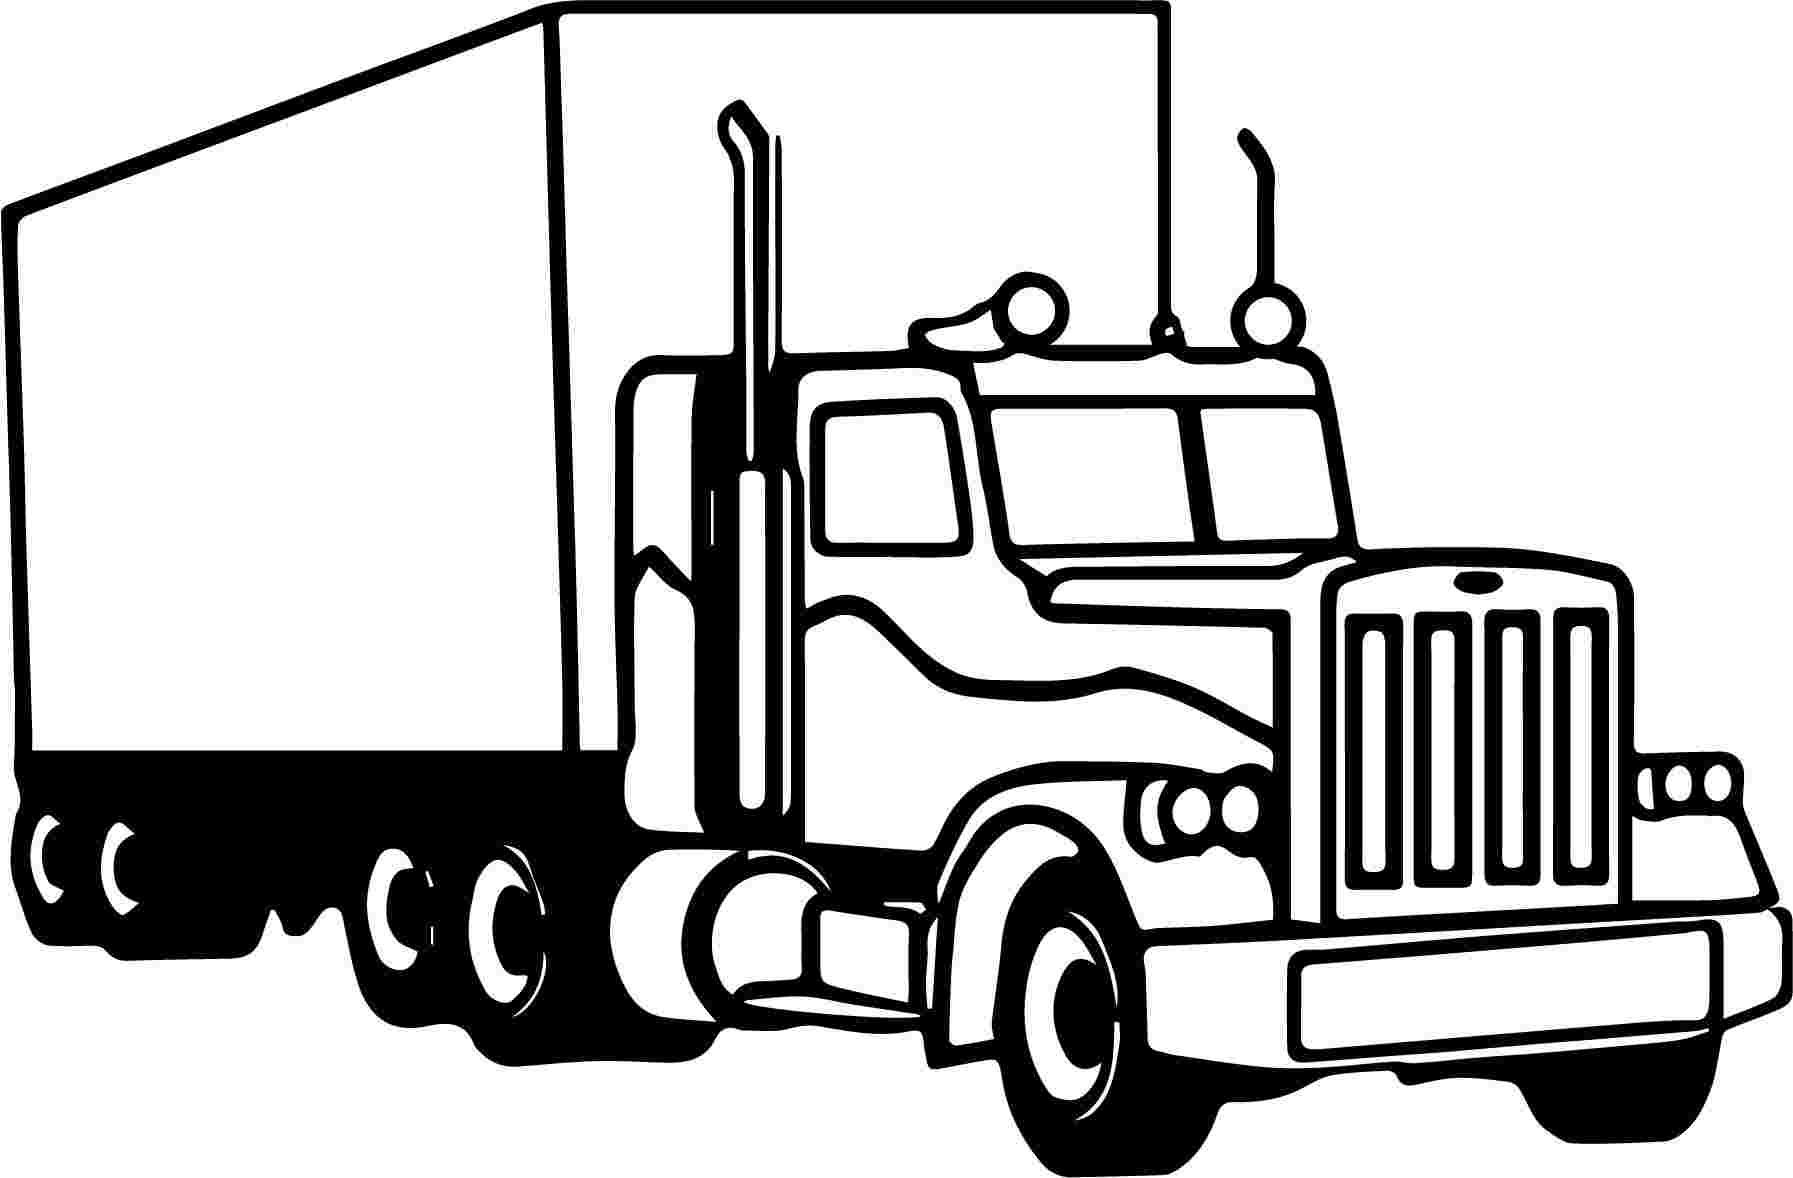 Fire Trucks Coloring Page Awesome Fire Truck Helping Firefighter Kill The Fire Coloring Page In 2020 Truck Coloring Pages Coloring Pages Shape Coloring Pages